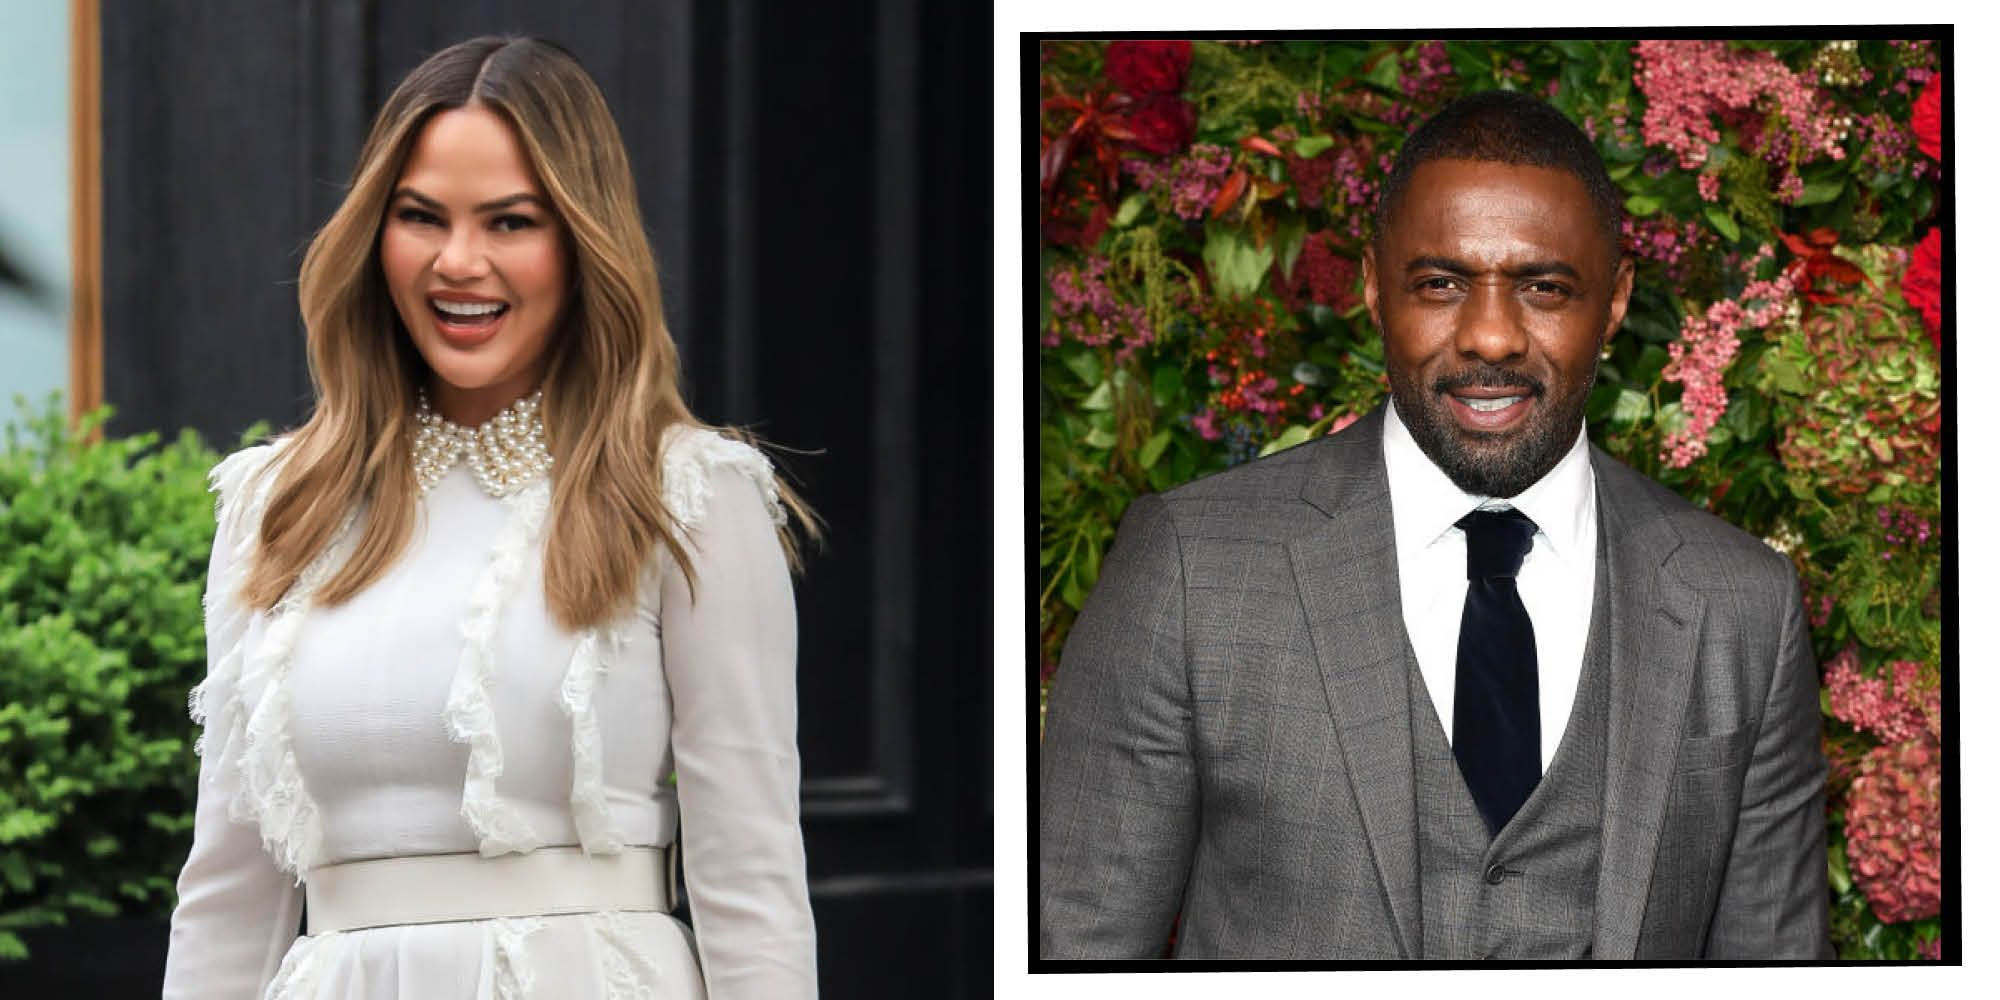 Chrissy Teigen Concedes That Idris Elba Probably Was Sexier In 1995 Than Husband John Legend